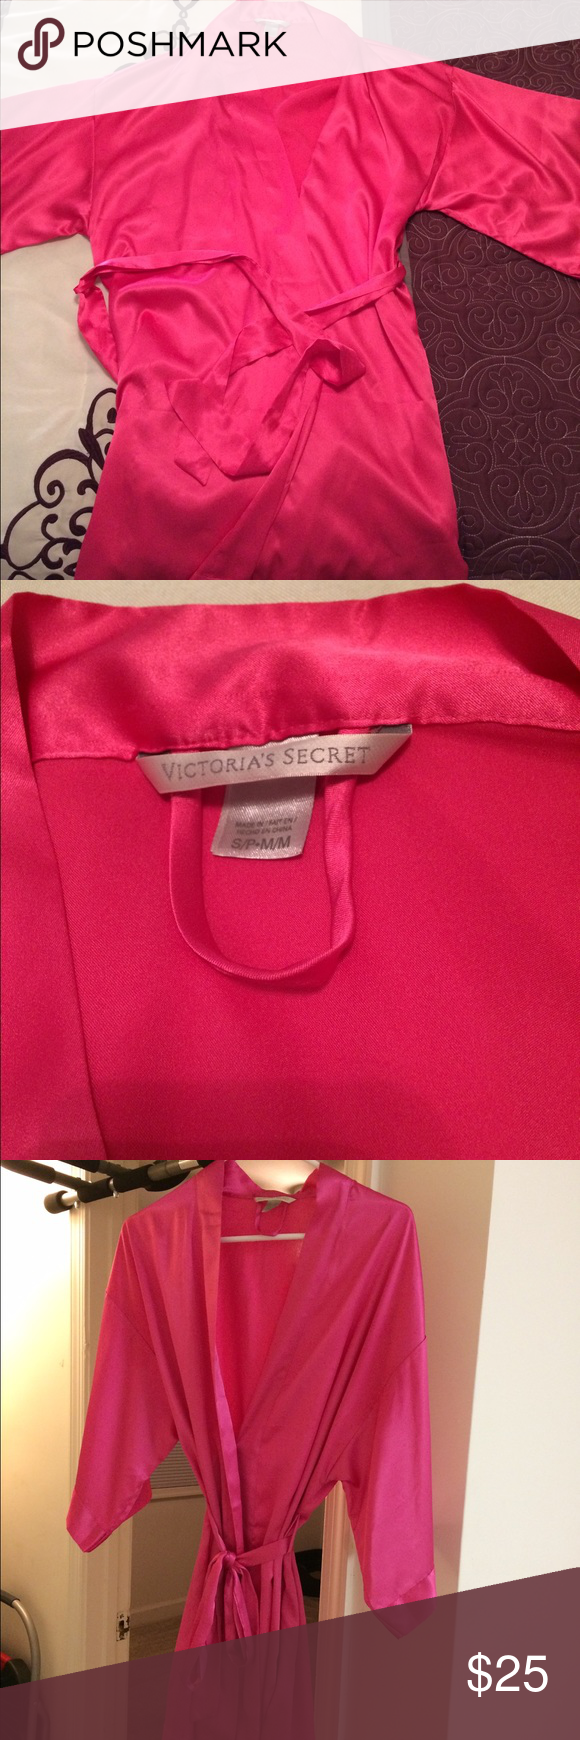 Hot pink Victoria Secret robe Hot pink Victoria Secret robe ...